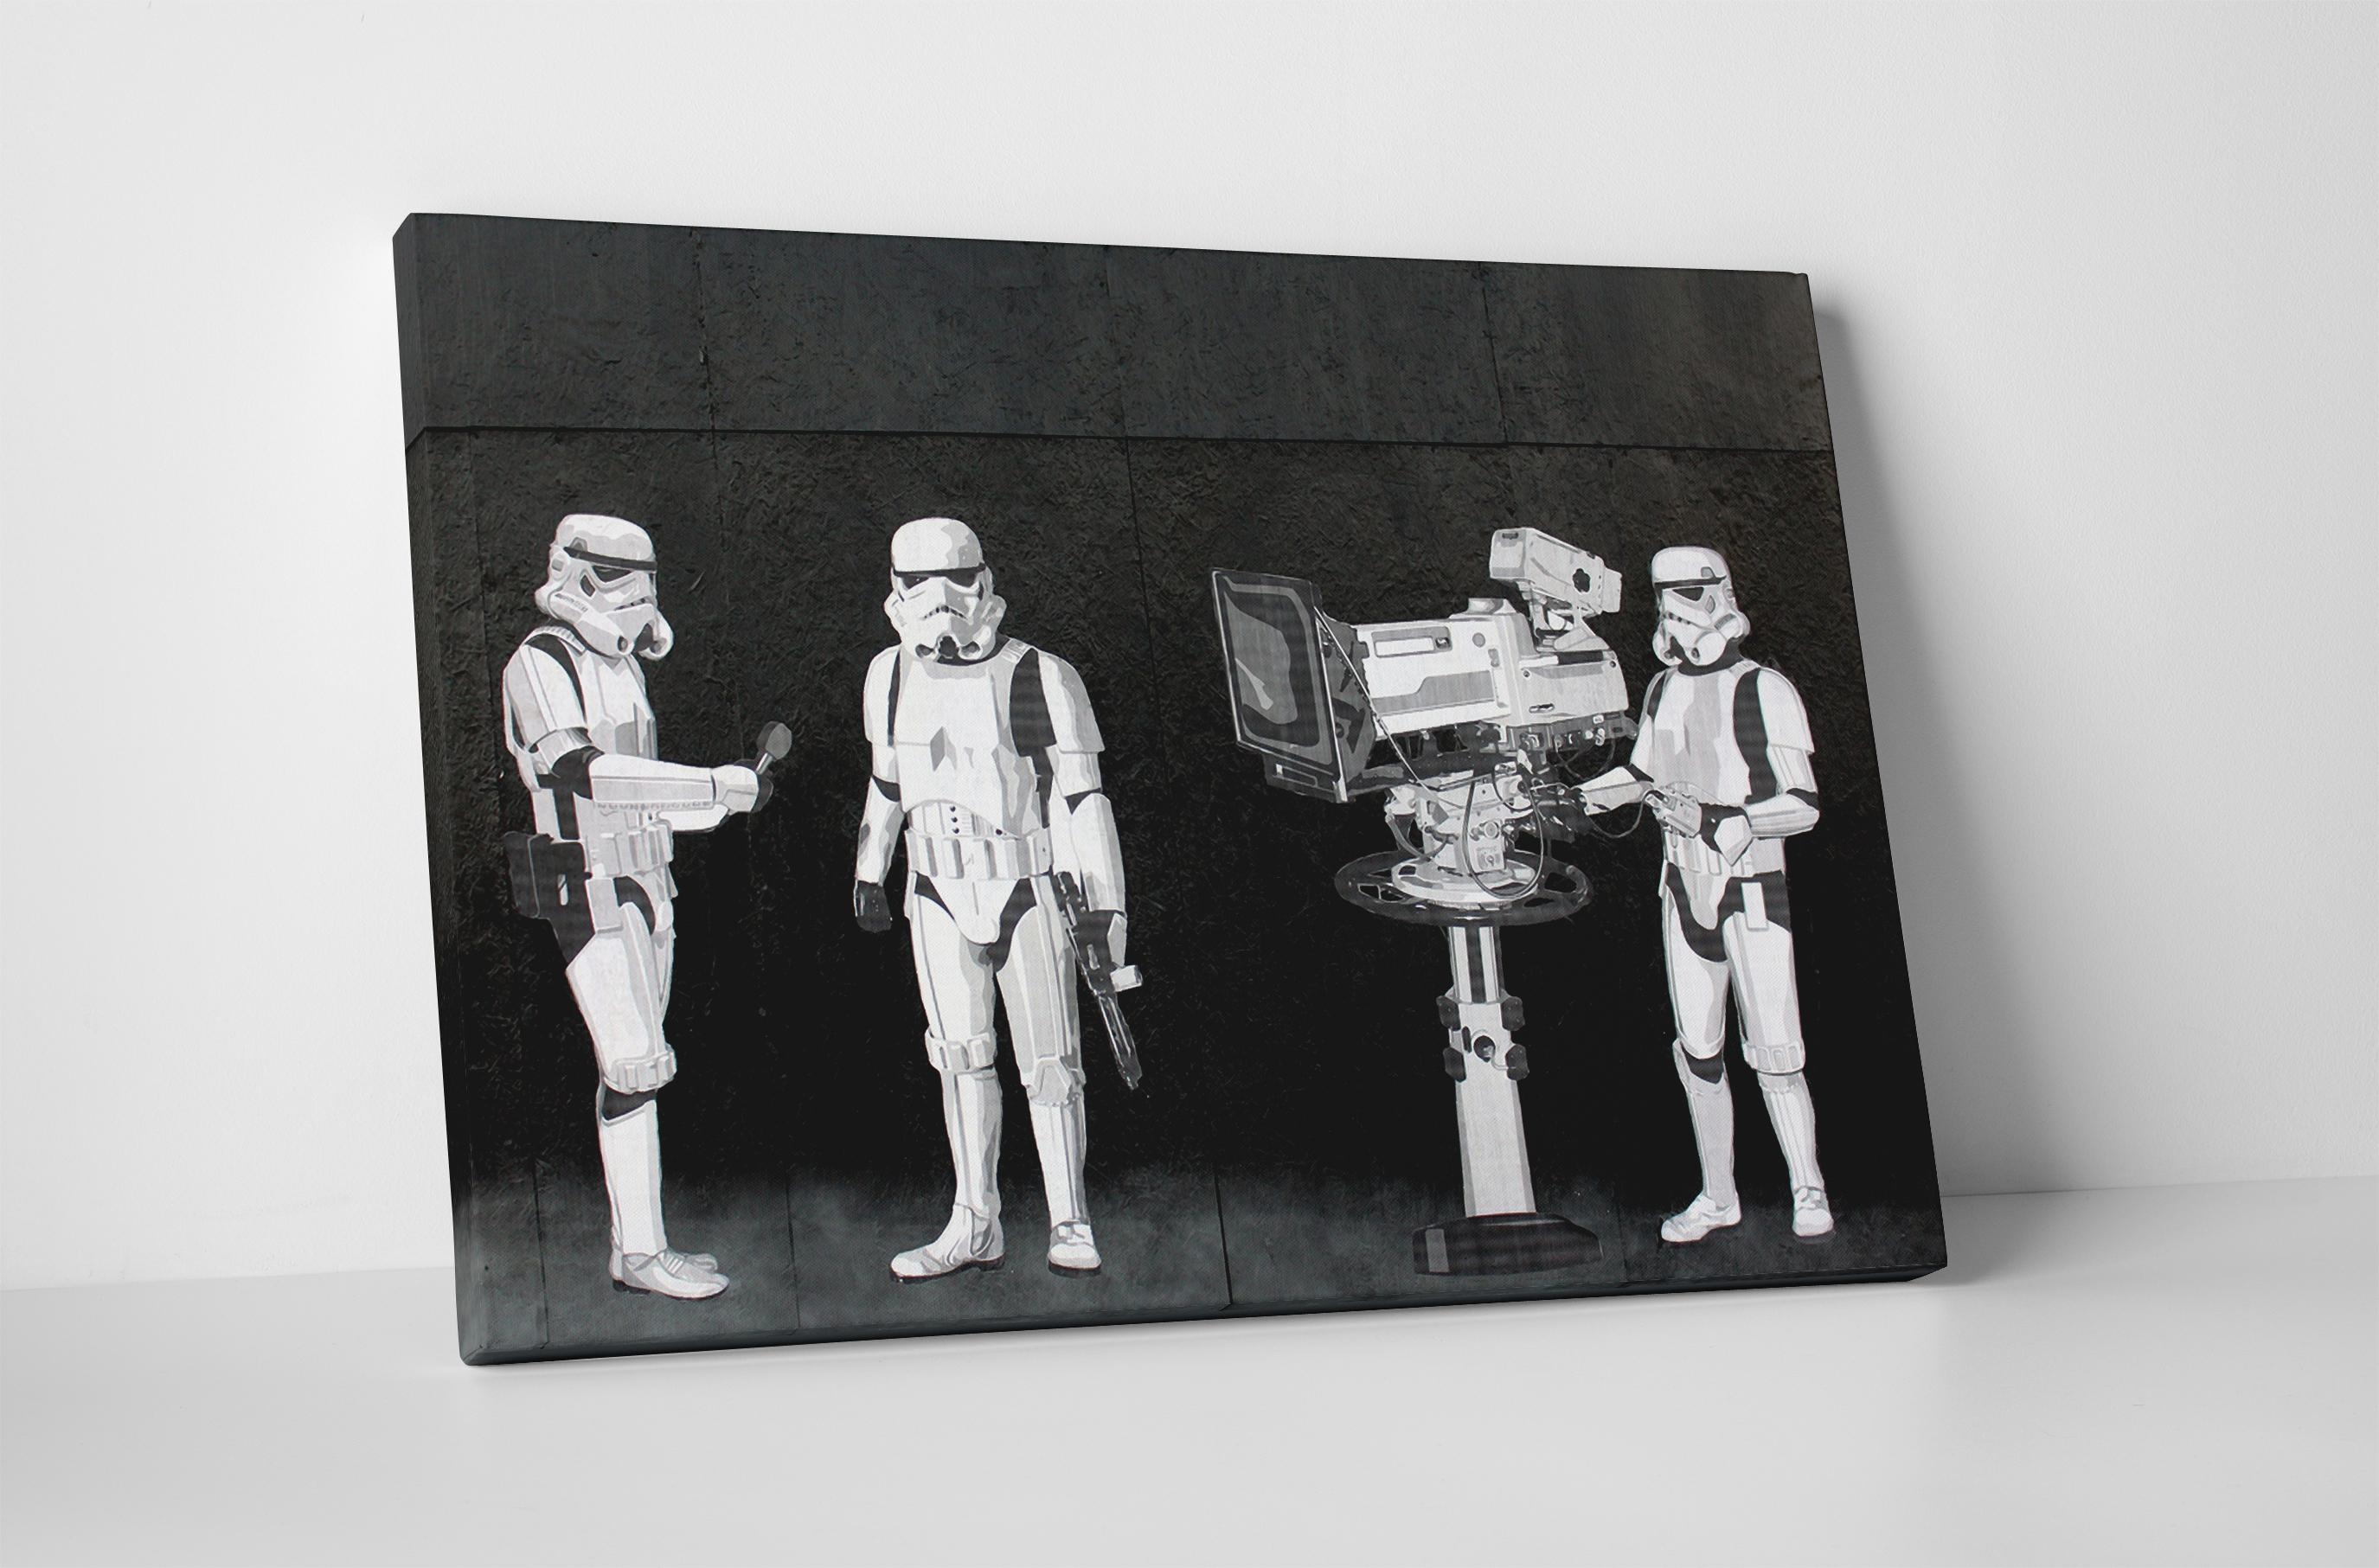 Banksy Stormtroopers Filming Oscars Canvas Wall Art Regarding Banksy Wall Art Canvas (View 2 of 20)